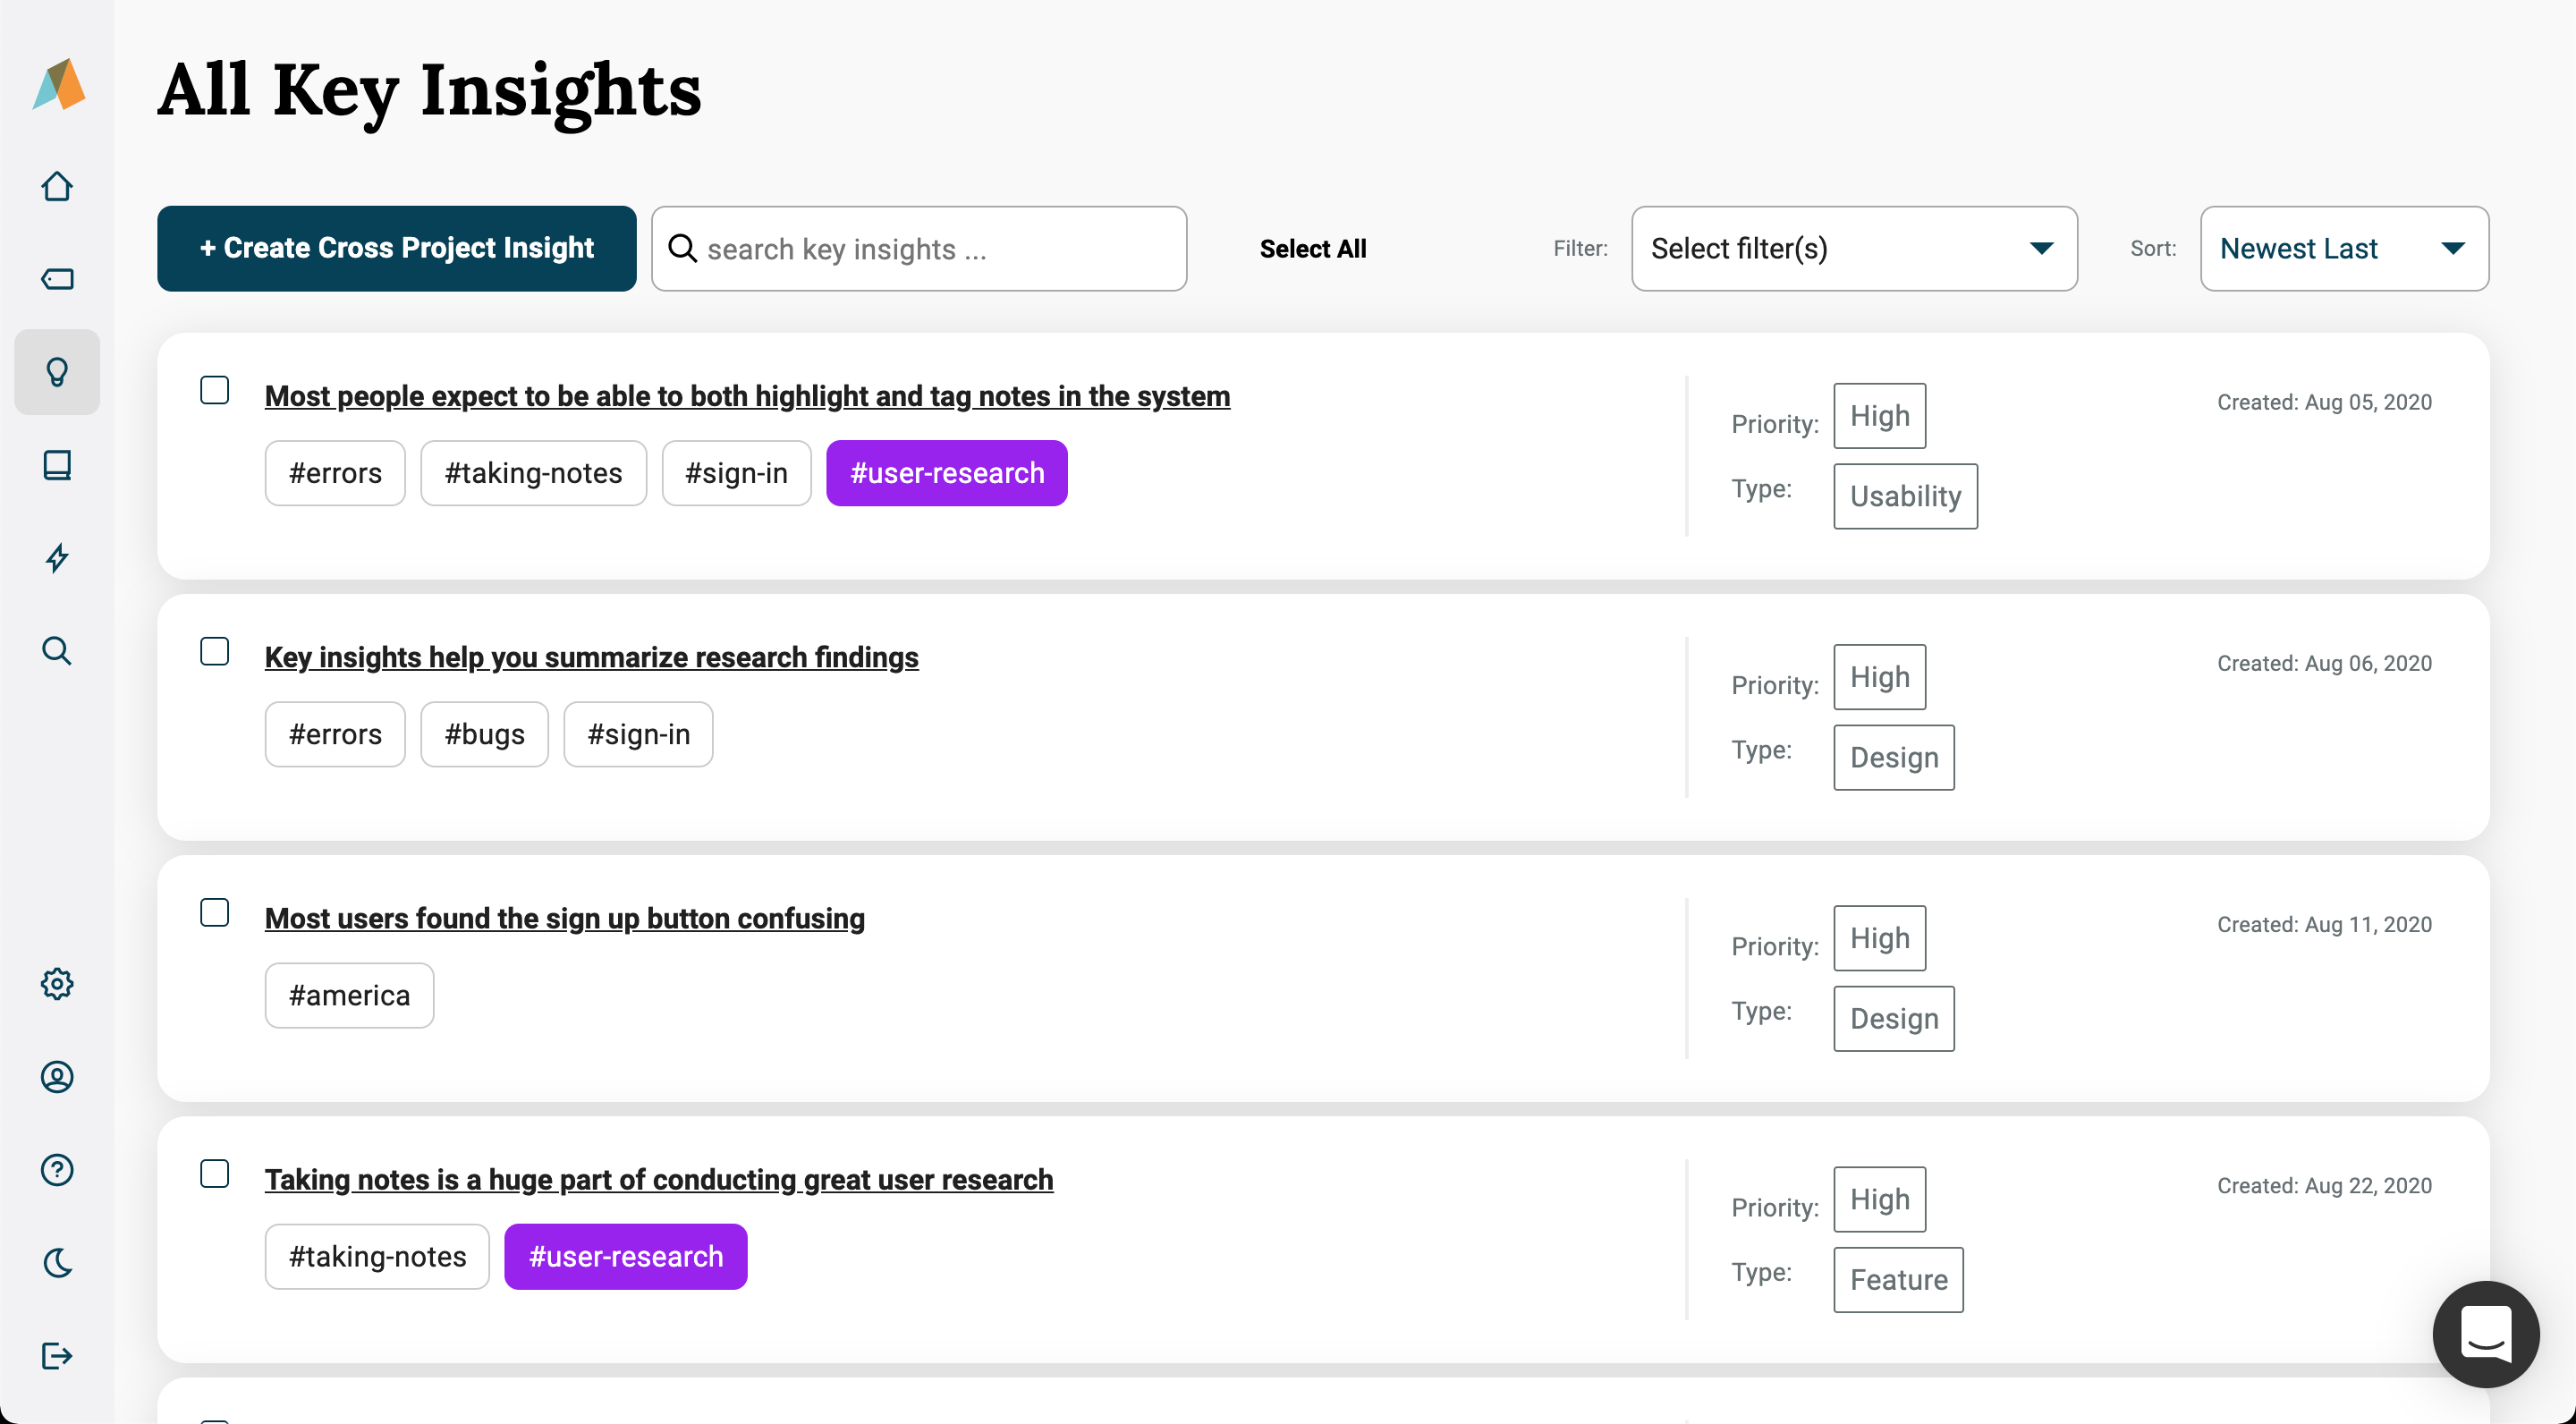 creating cross project insights from the all insights page